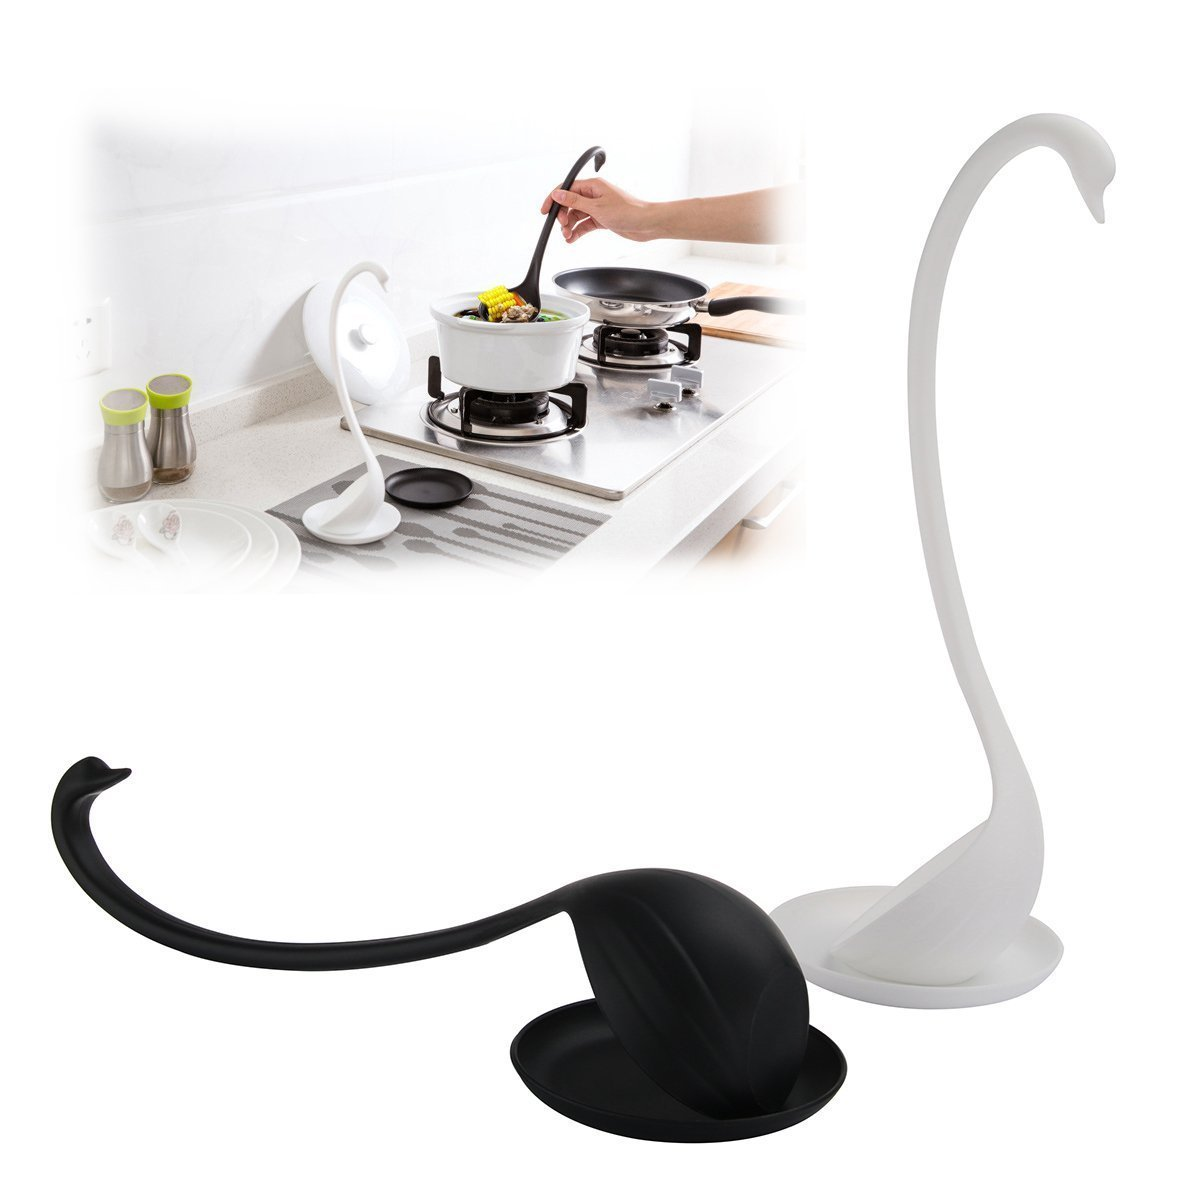 KCASA KC-W003 Elegant Swan Creative Kitchen Soup Ladle Spoon